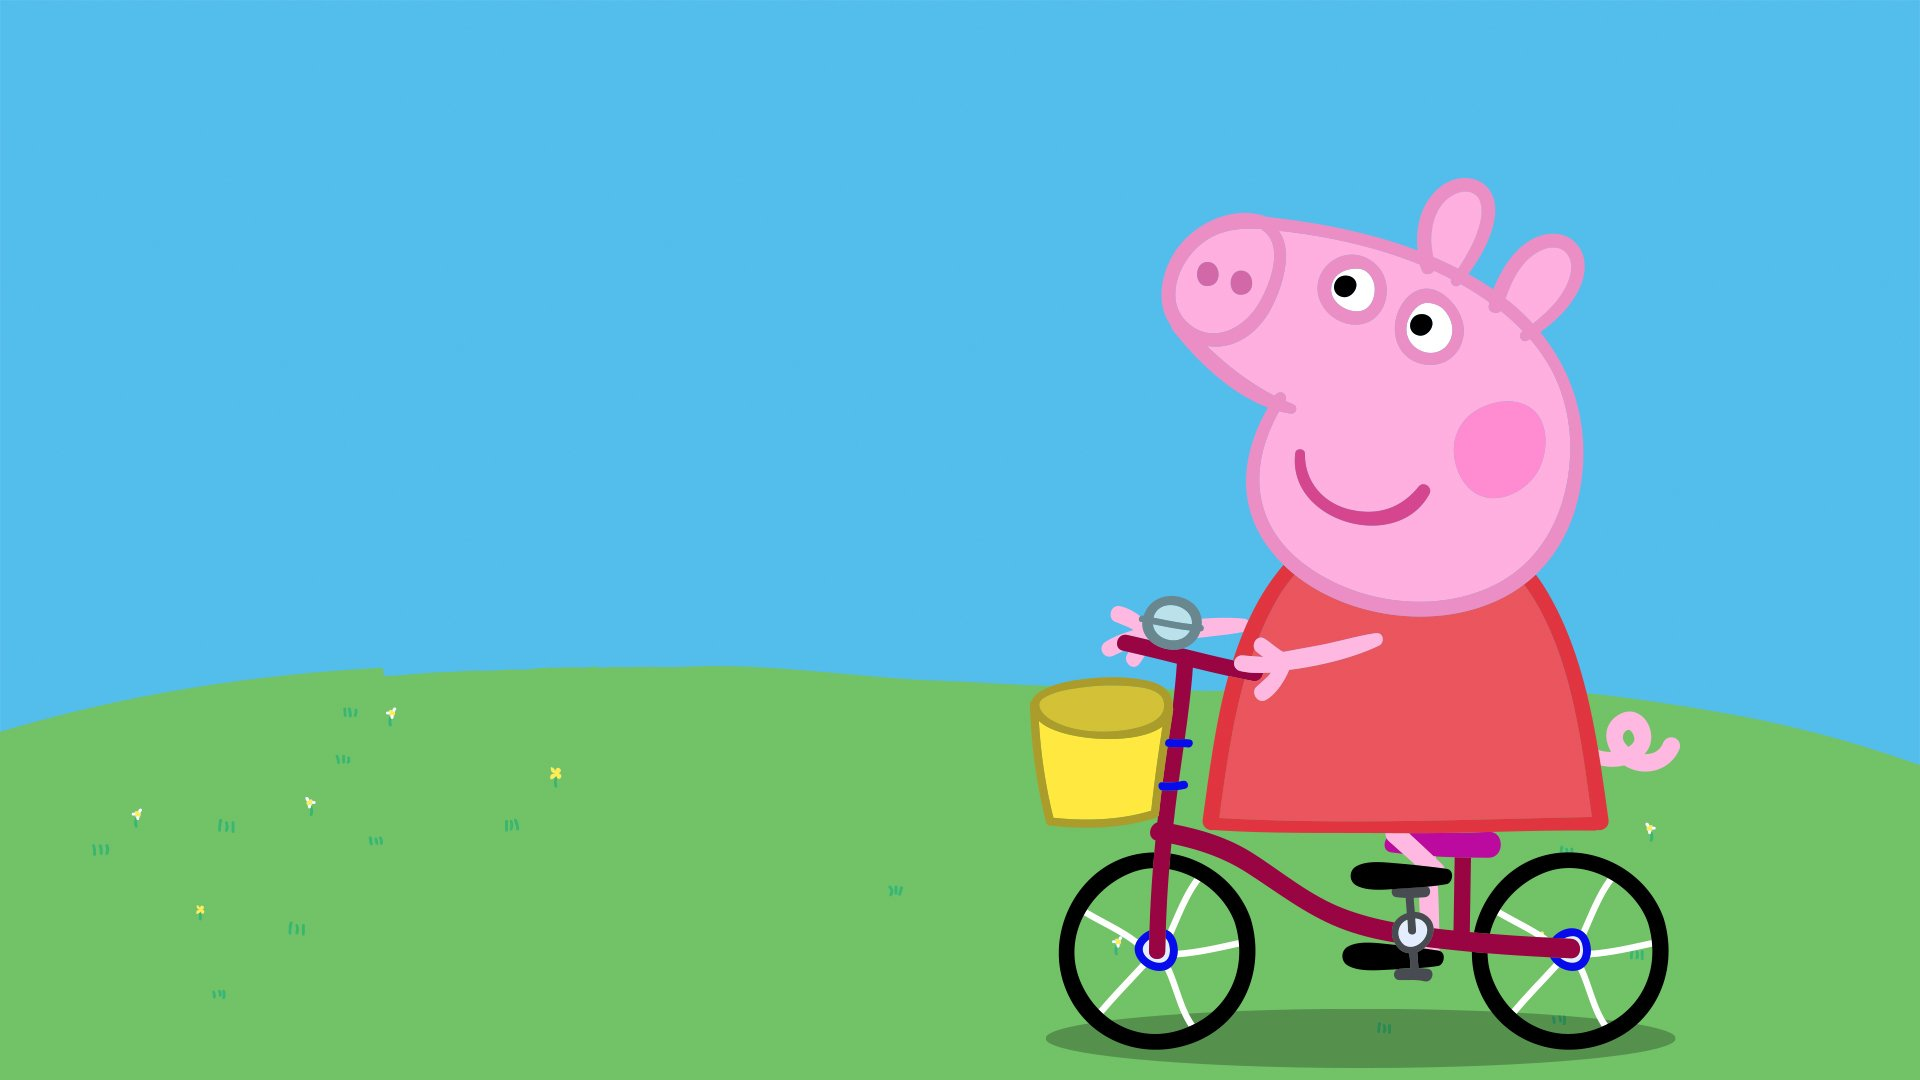 Peppa Pig Background For Computer   1920x1080 Wallpaper   teahubio